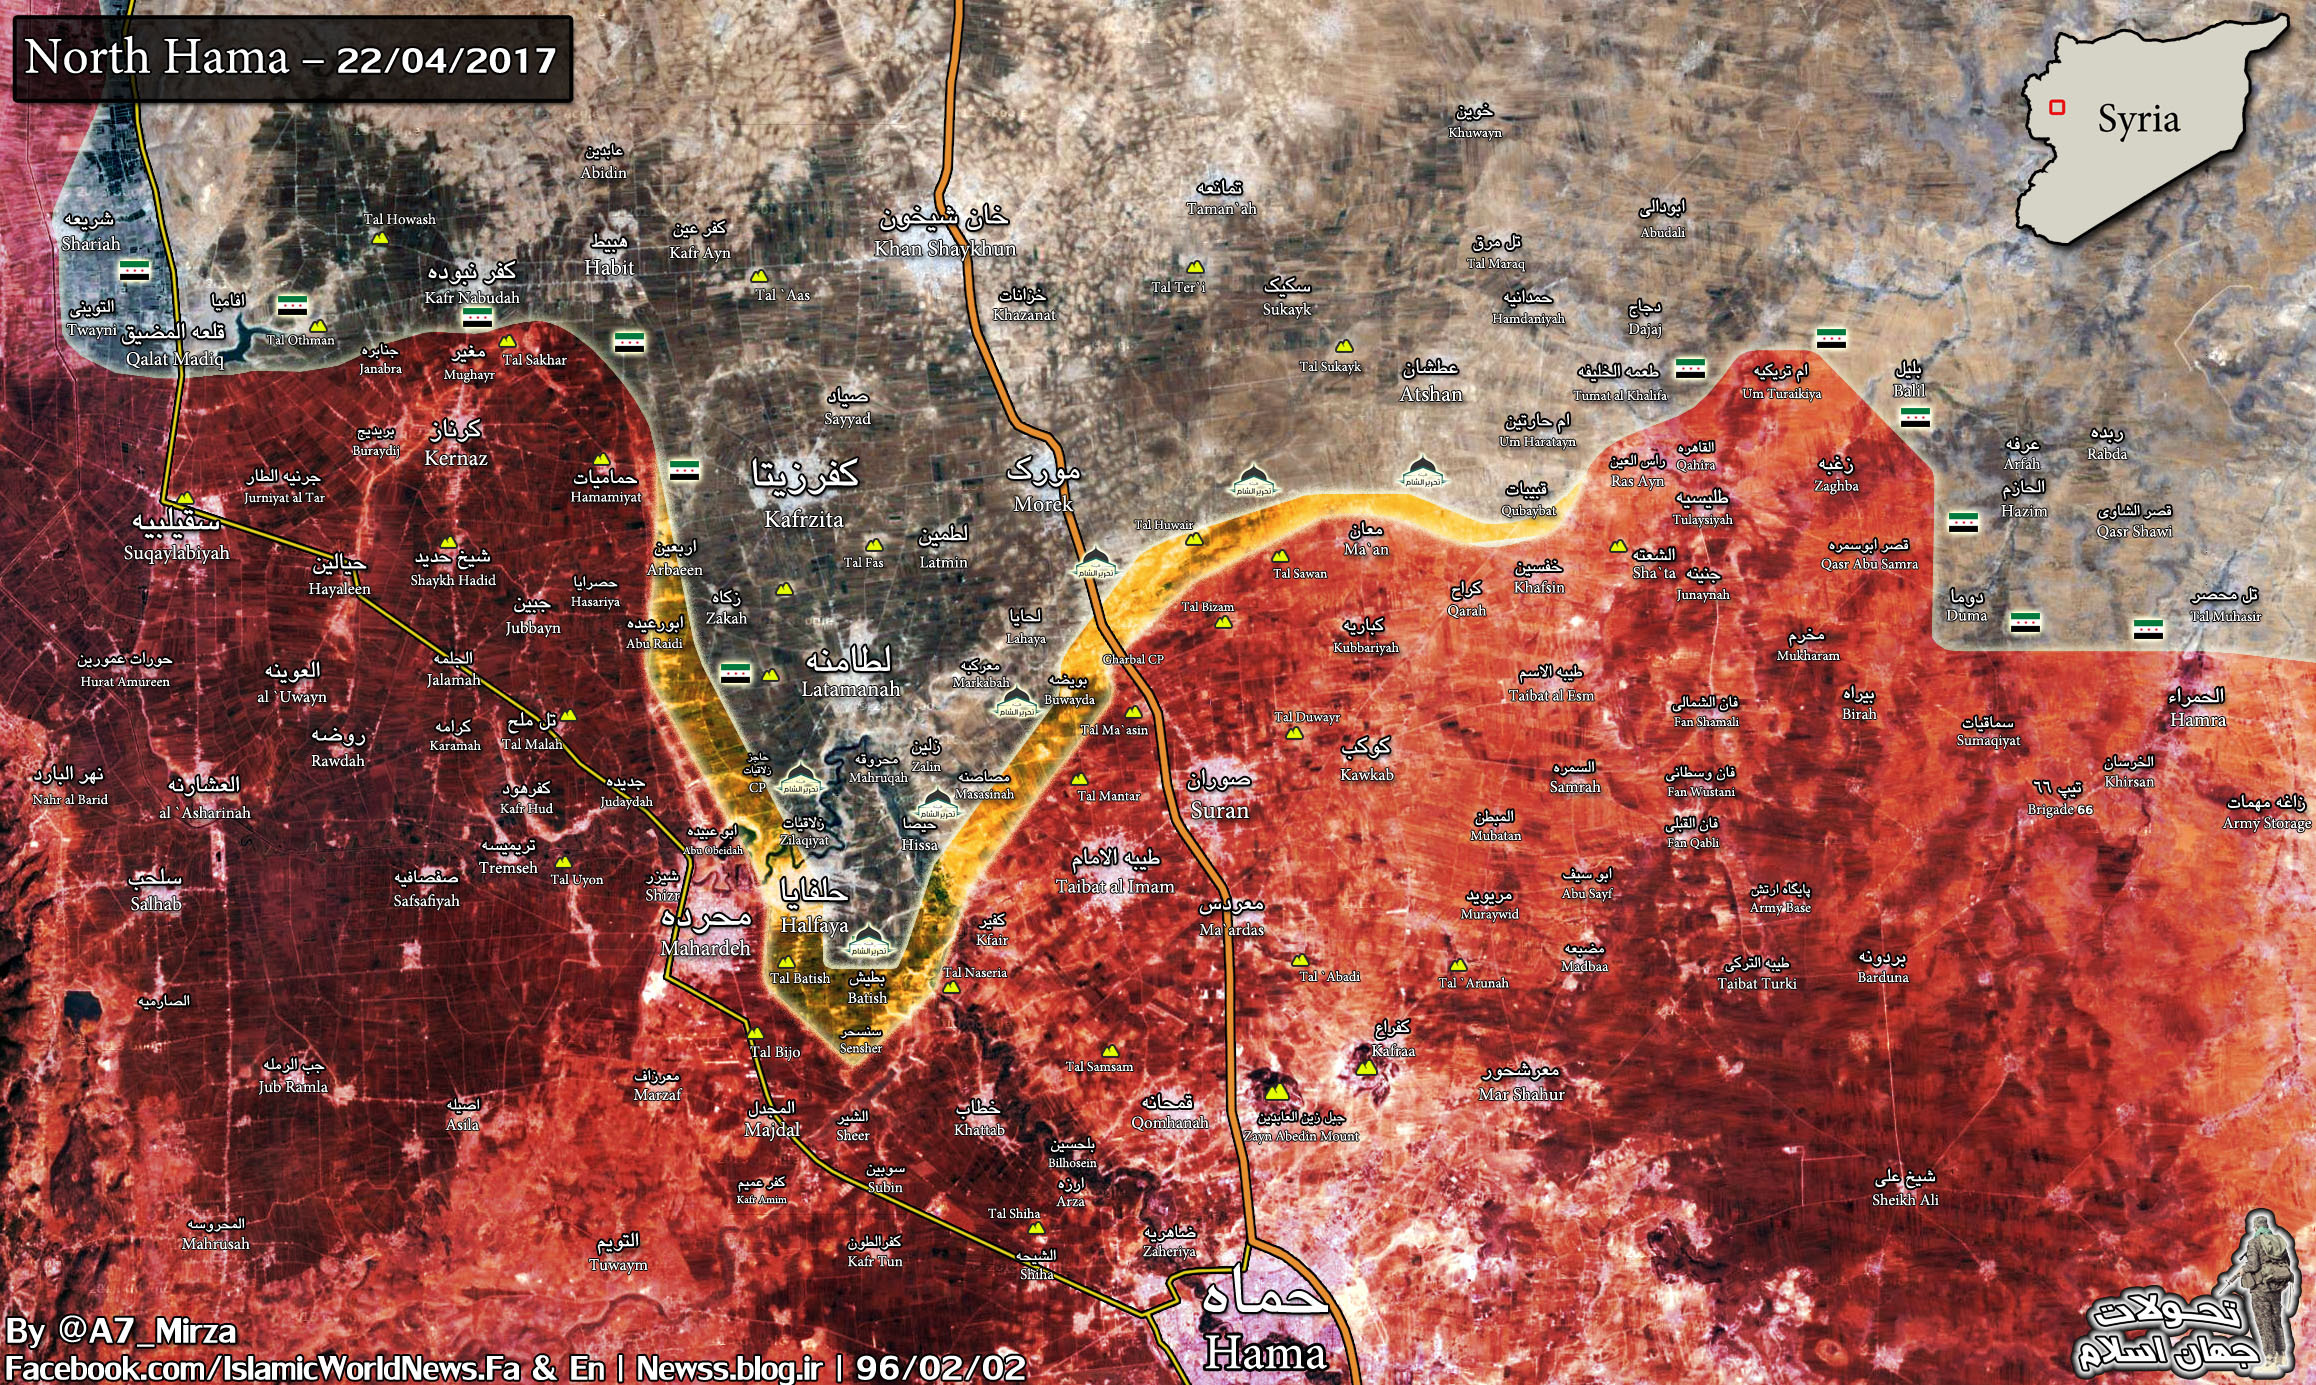 Overview Of Government Forces Advance In Northern Hama On April 22